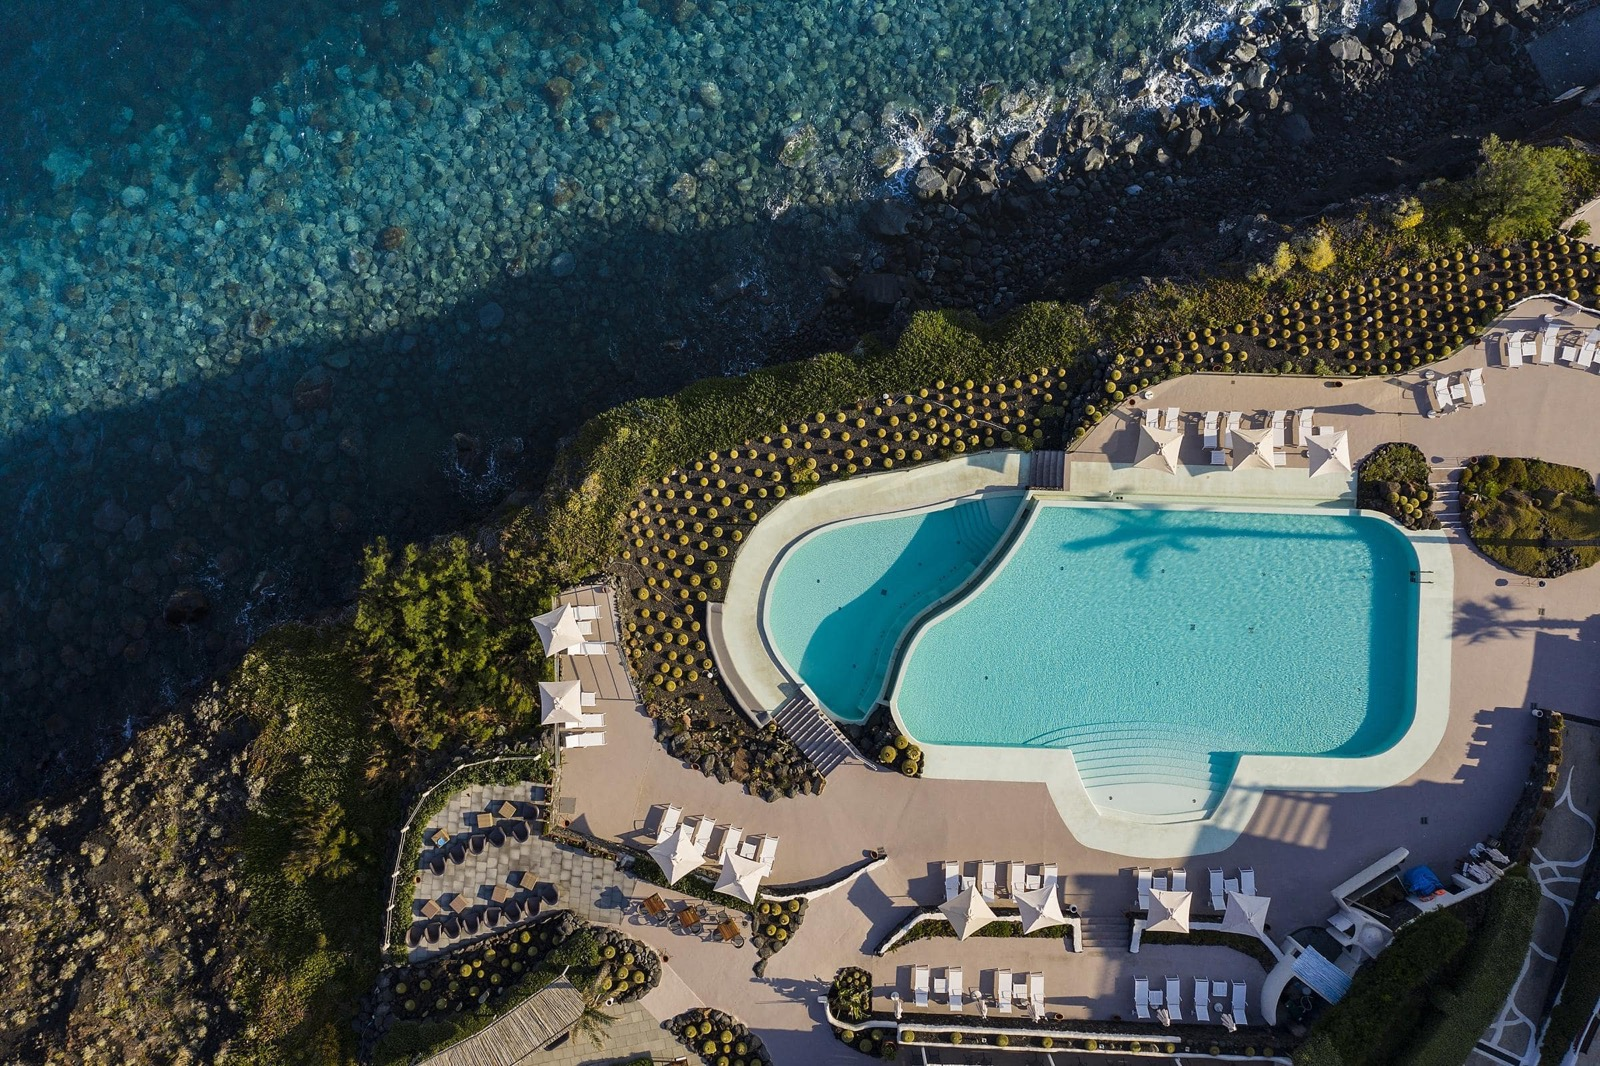 OFFERTA WEEKEND THERASIA RESORT E SPA LUGLIO